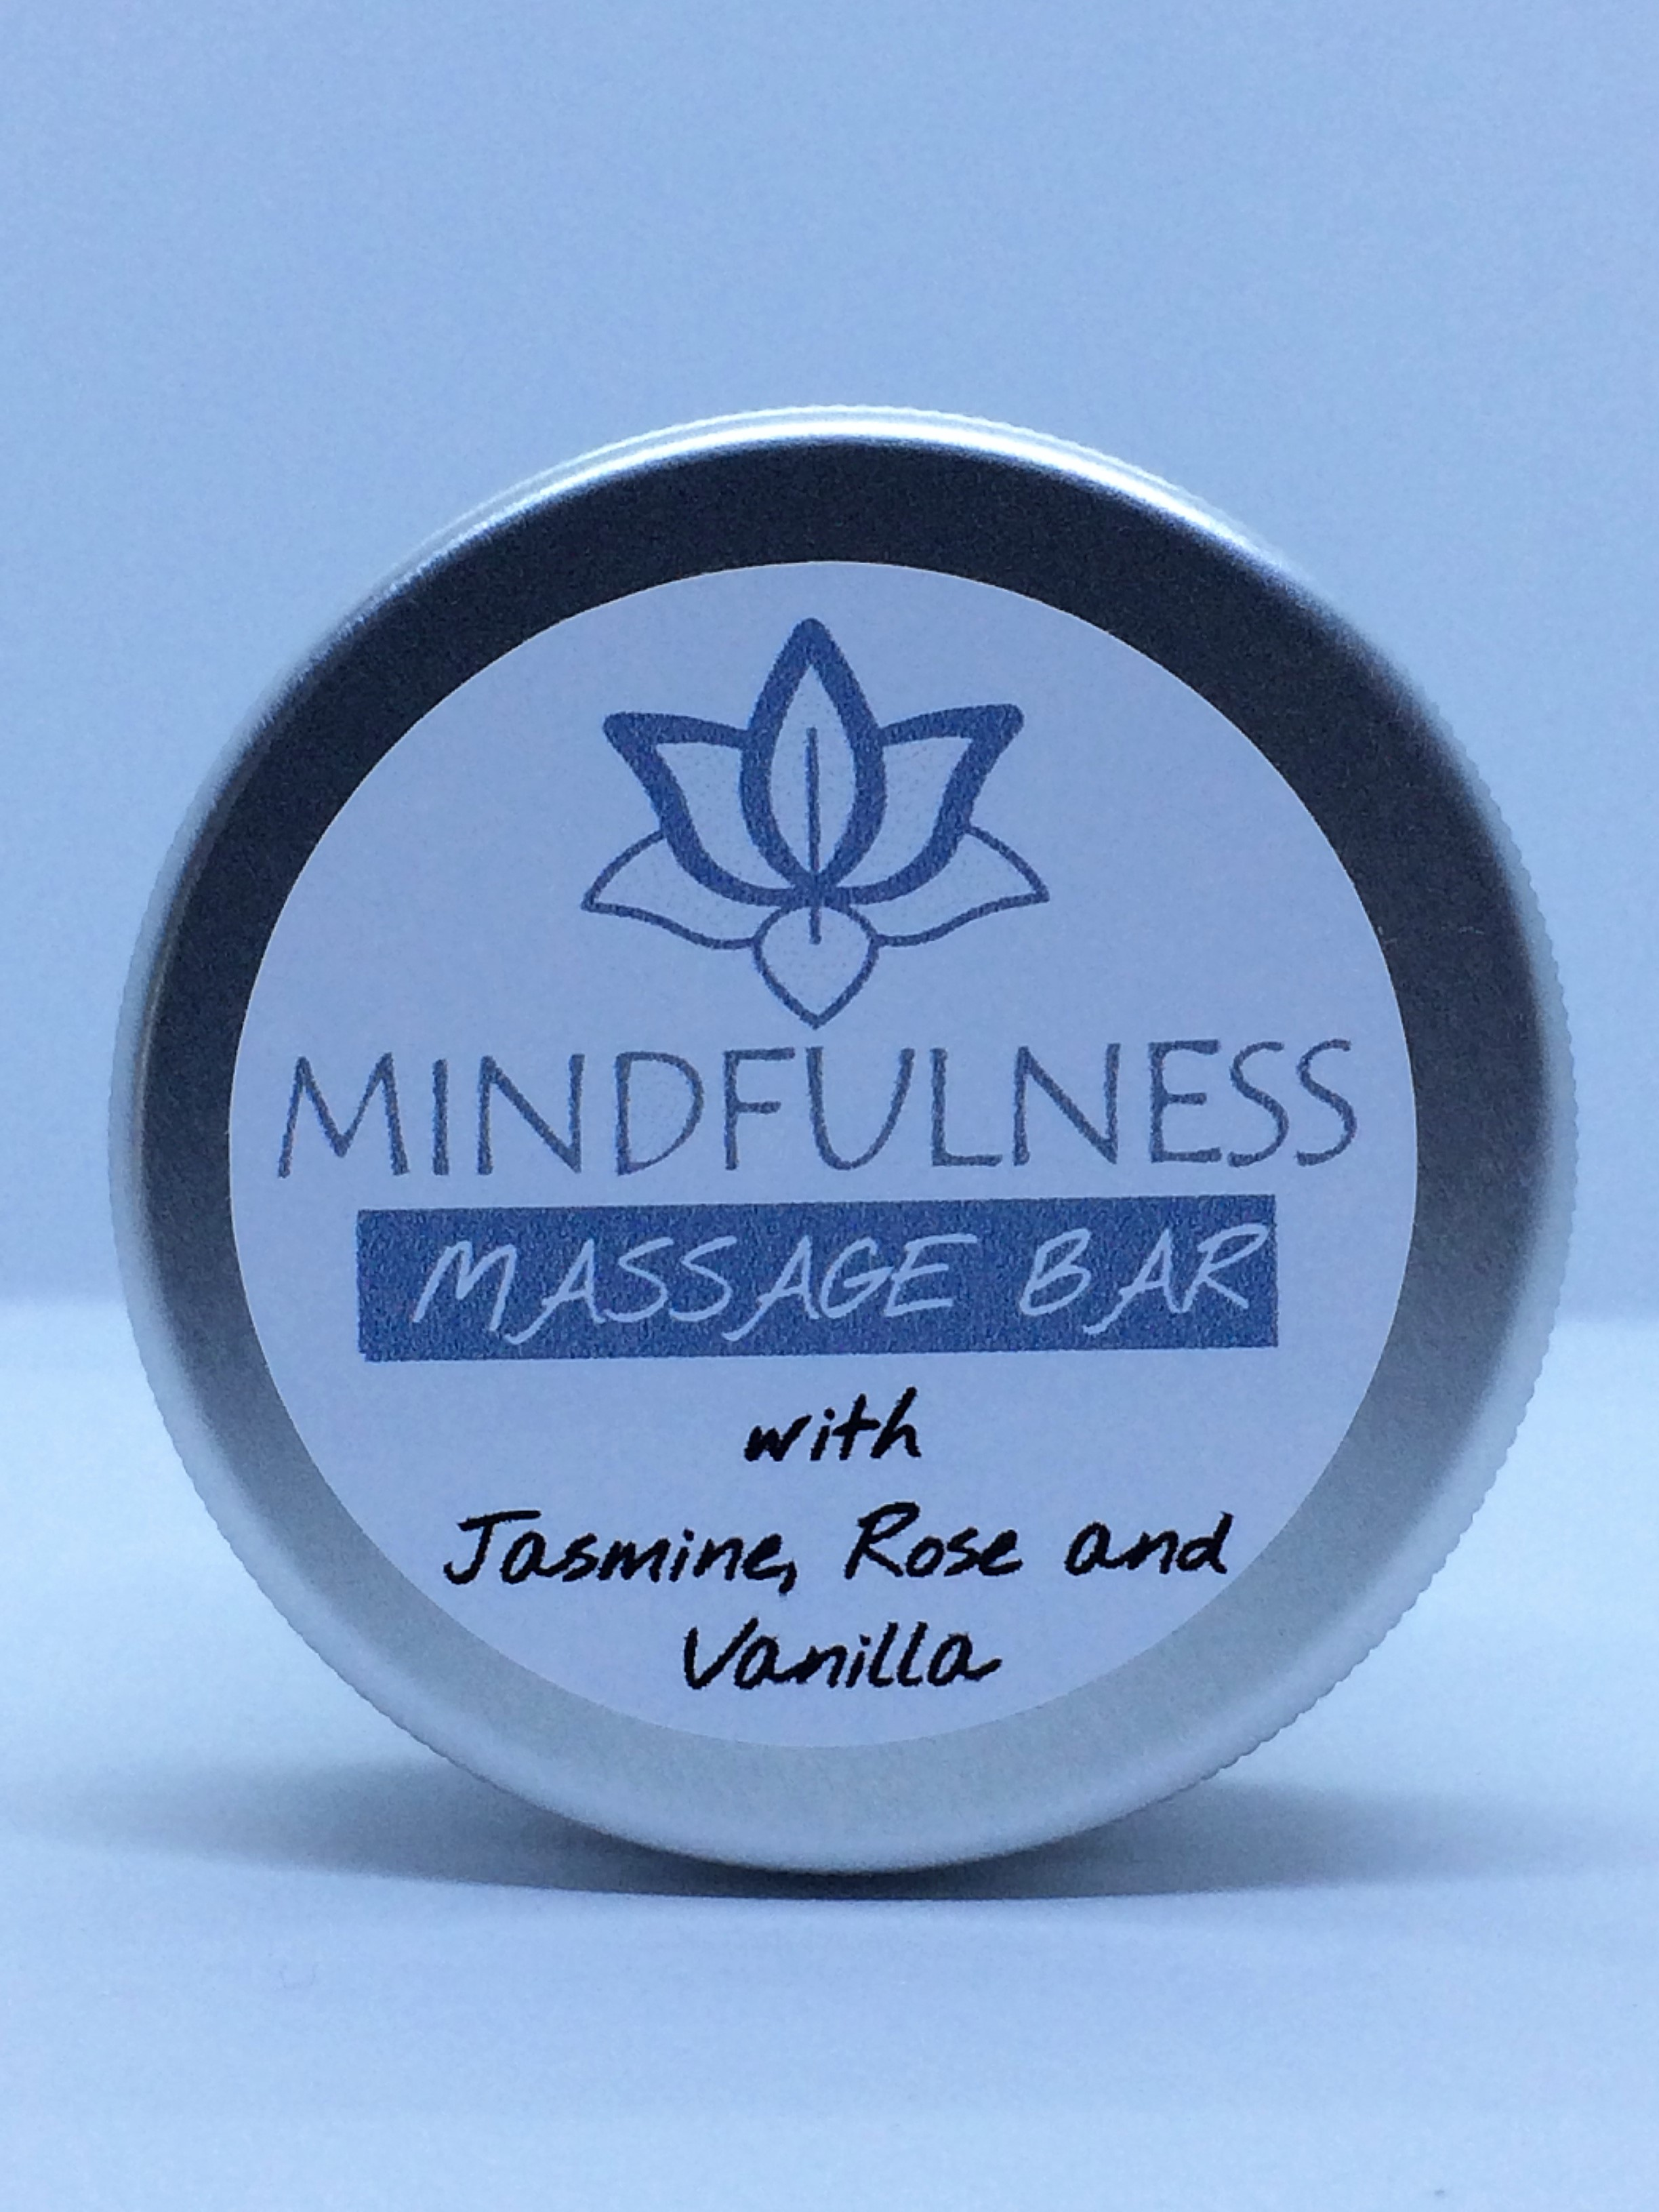 Mindfulness Massage Bar with Jasmine, Rose and Vanilla